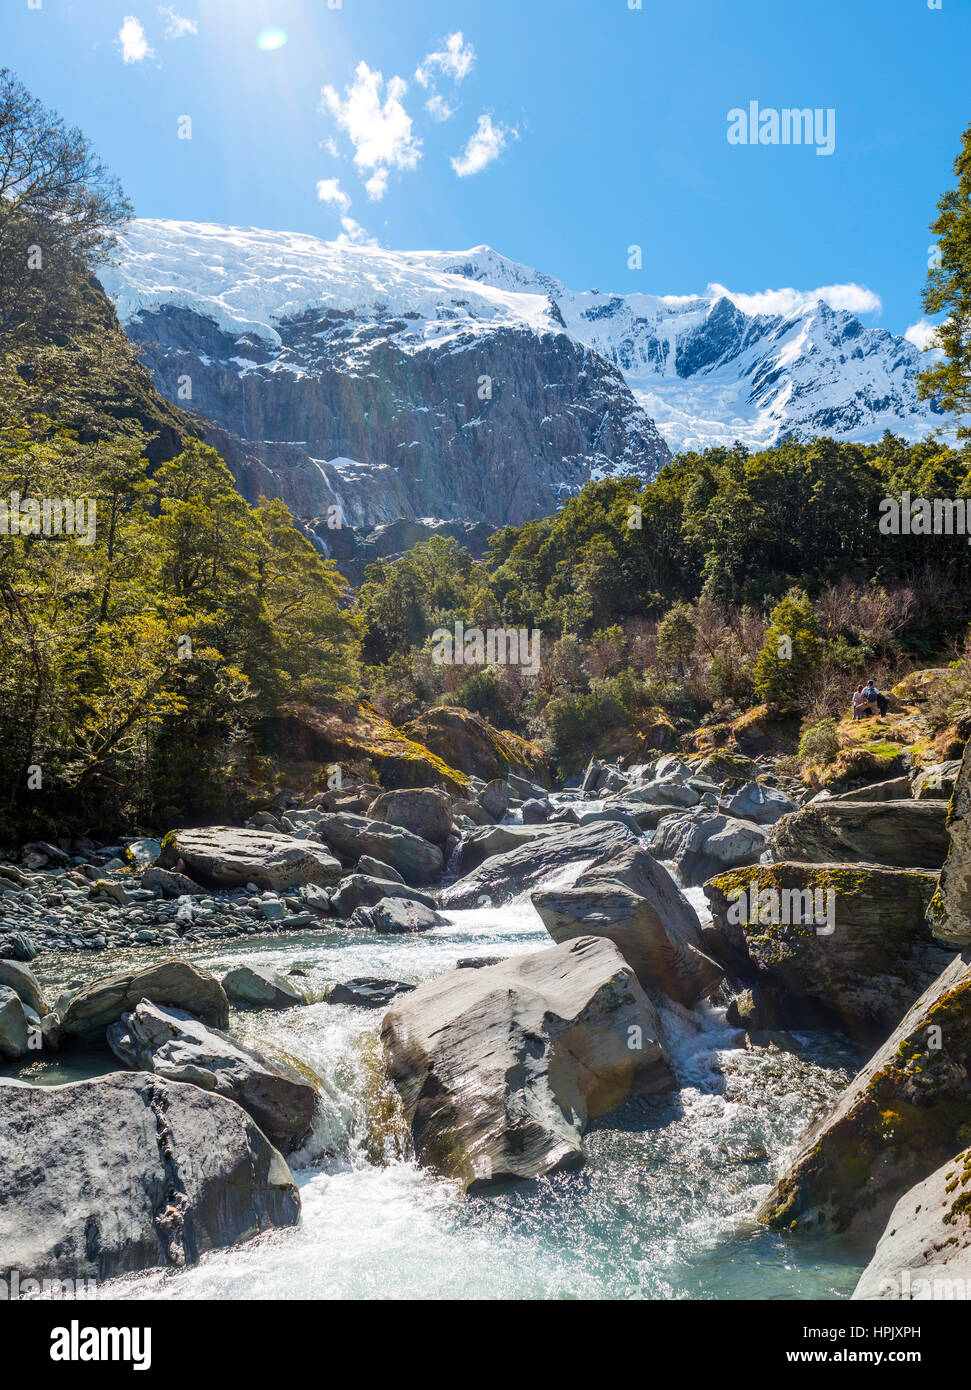 Glacial river flowing through mountains, Rob Roy Glacier, Mount Aspiring National Park, Otago, Southland, New Zealand - Stock Image